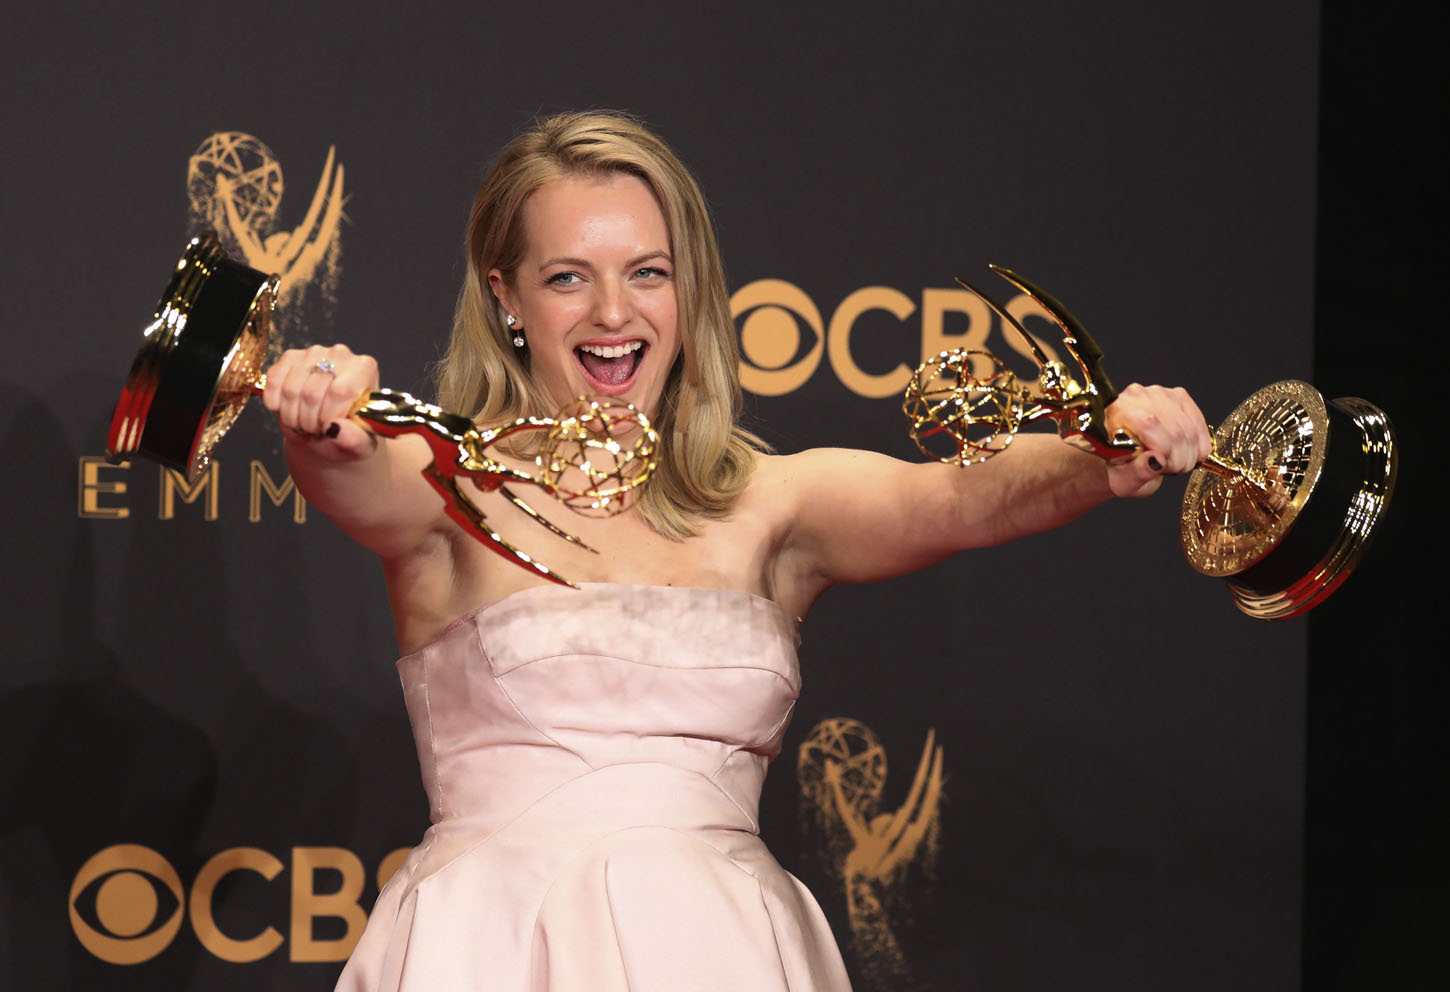 69th Primetime Emmy Awards Äì Photo Room Äì Los Angeles, California, U.S., 17/09/2017 - Elizabeth Moss poses backstage with her awards for Outstanding Lead Actress in a Drama Series and  Outstanding Drama Series for